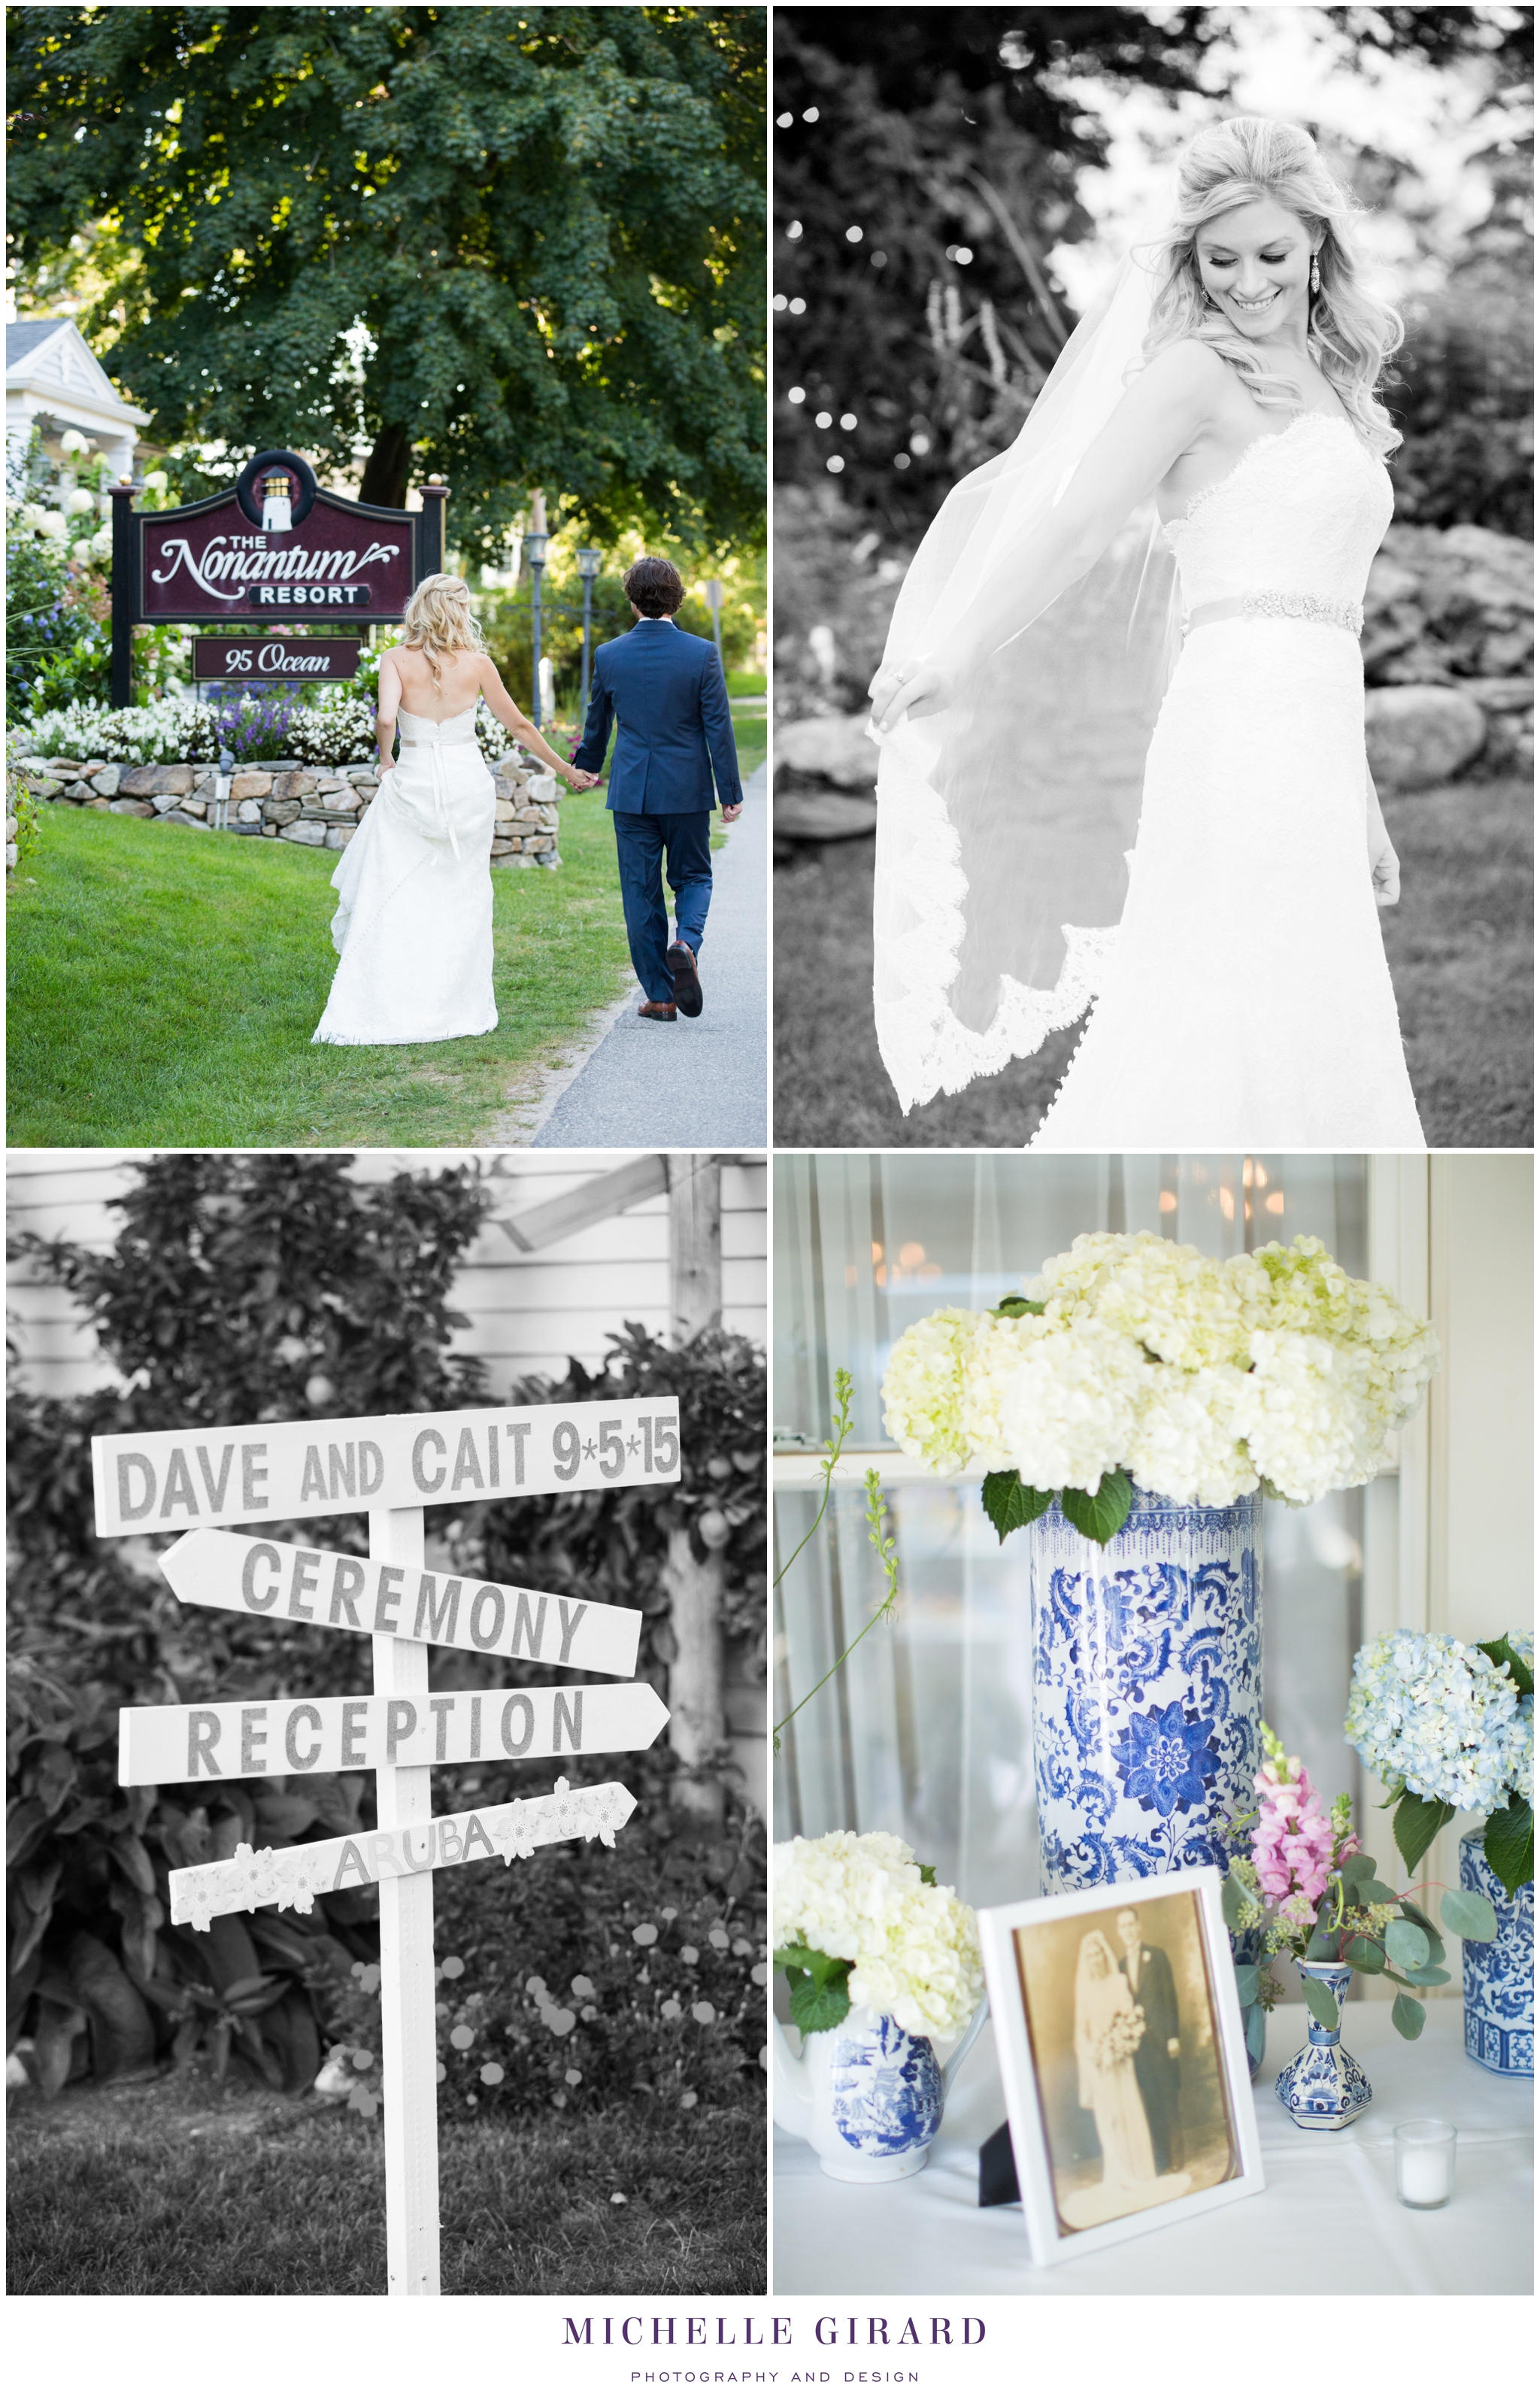 KennebunkportMaineWedding_NonantumResort_MichelleGirardPhotography42.jpg